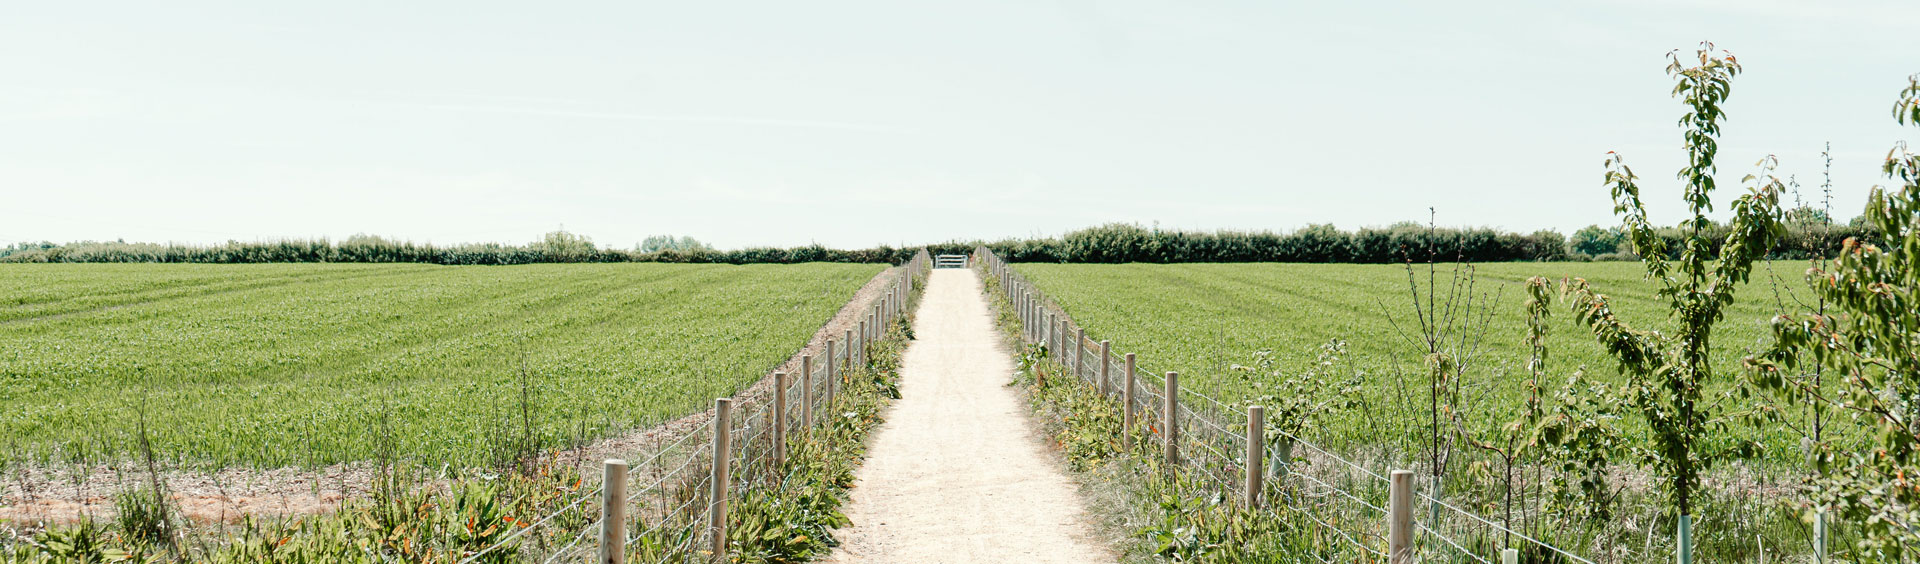 Dirst path running between two fields